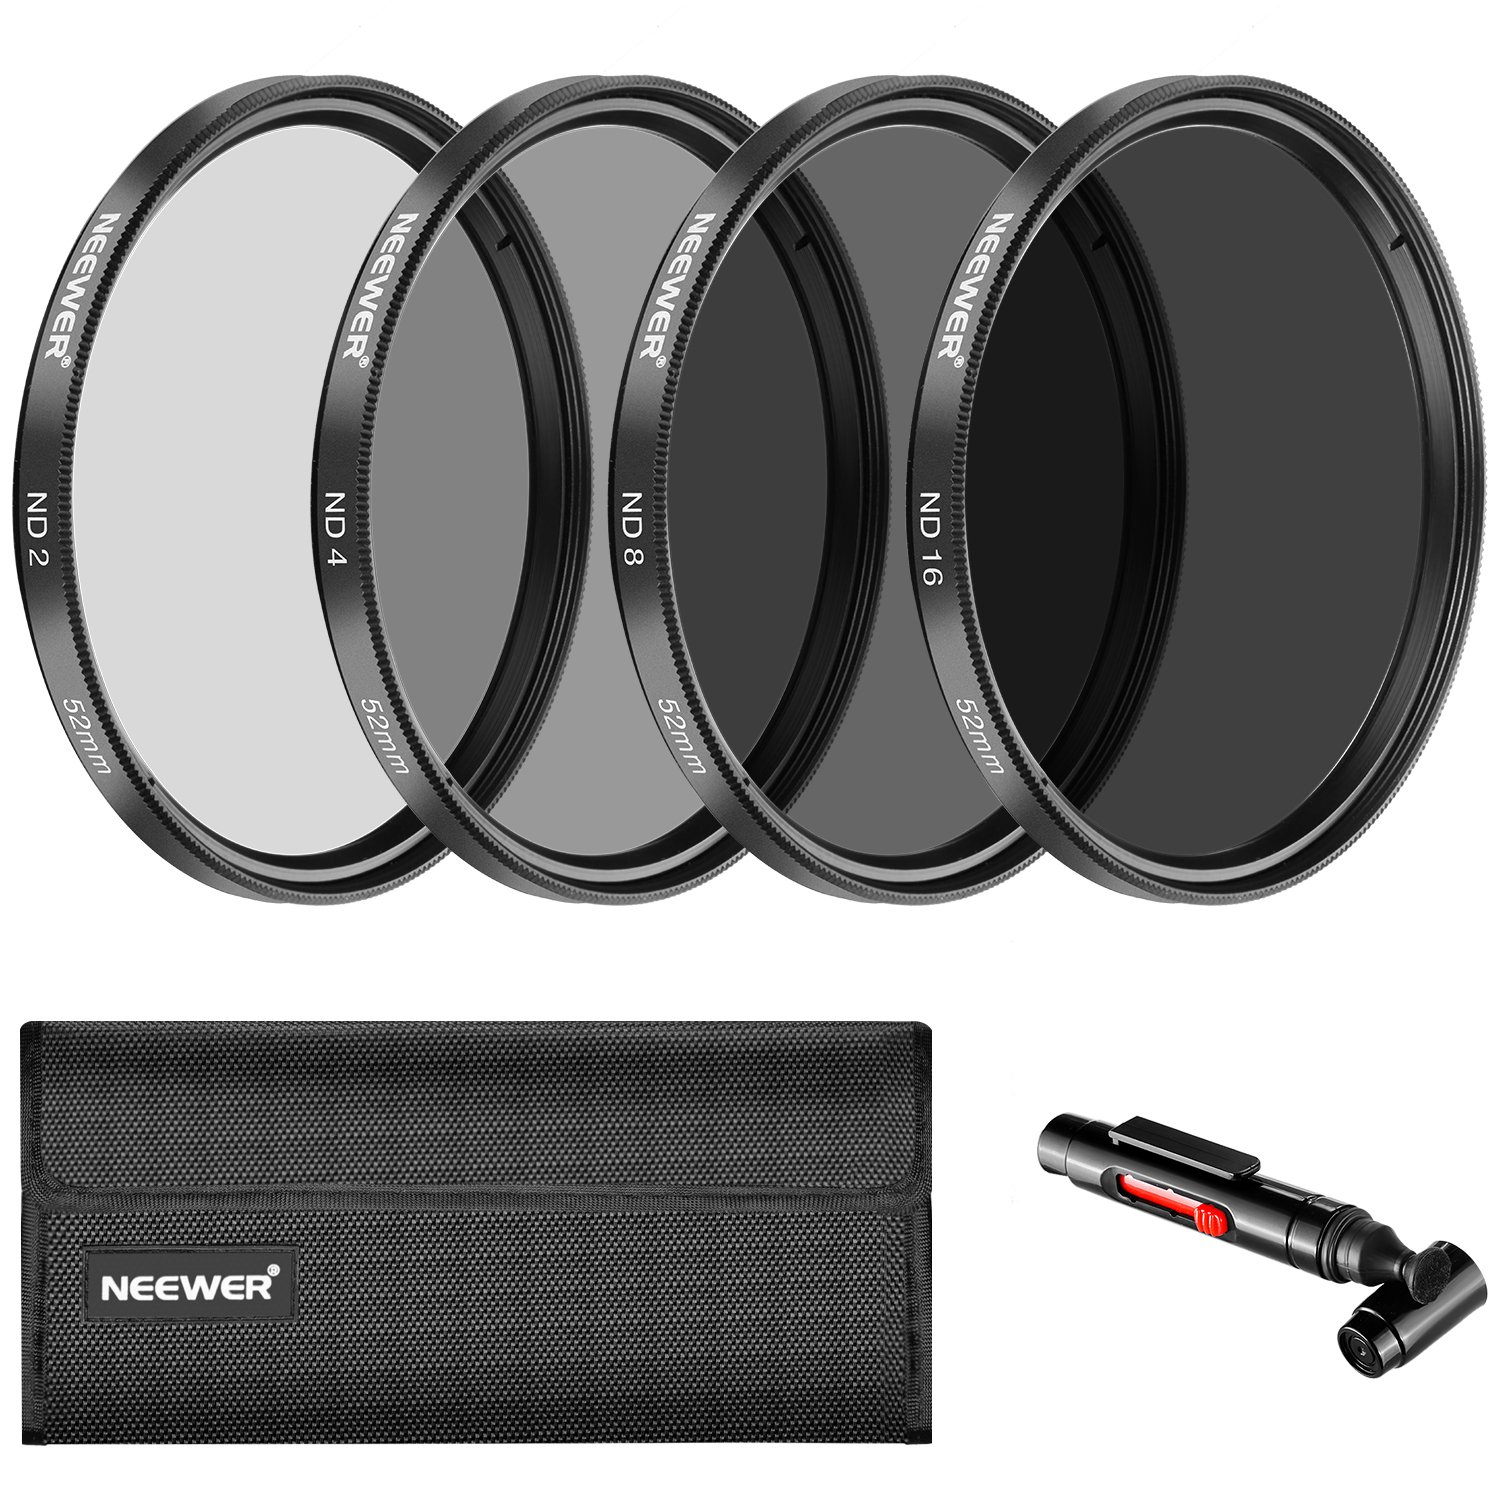 Neewer 52 mm Neutral Density ND2 ND4 ND8 ND16 Filter and Accessory Kit for Nikon D3300 D3100 D3000 D5300 D5200 D5100 D5000 D7000 D7100 DSLR, Lens Pen, Filter Bag by Neewer